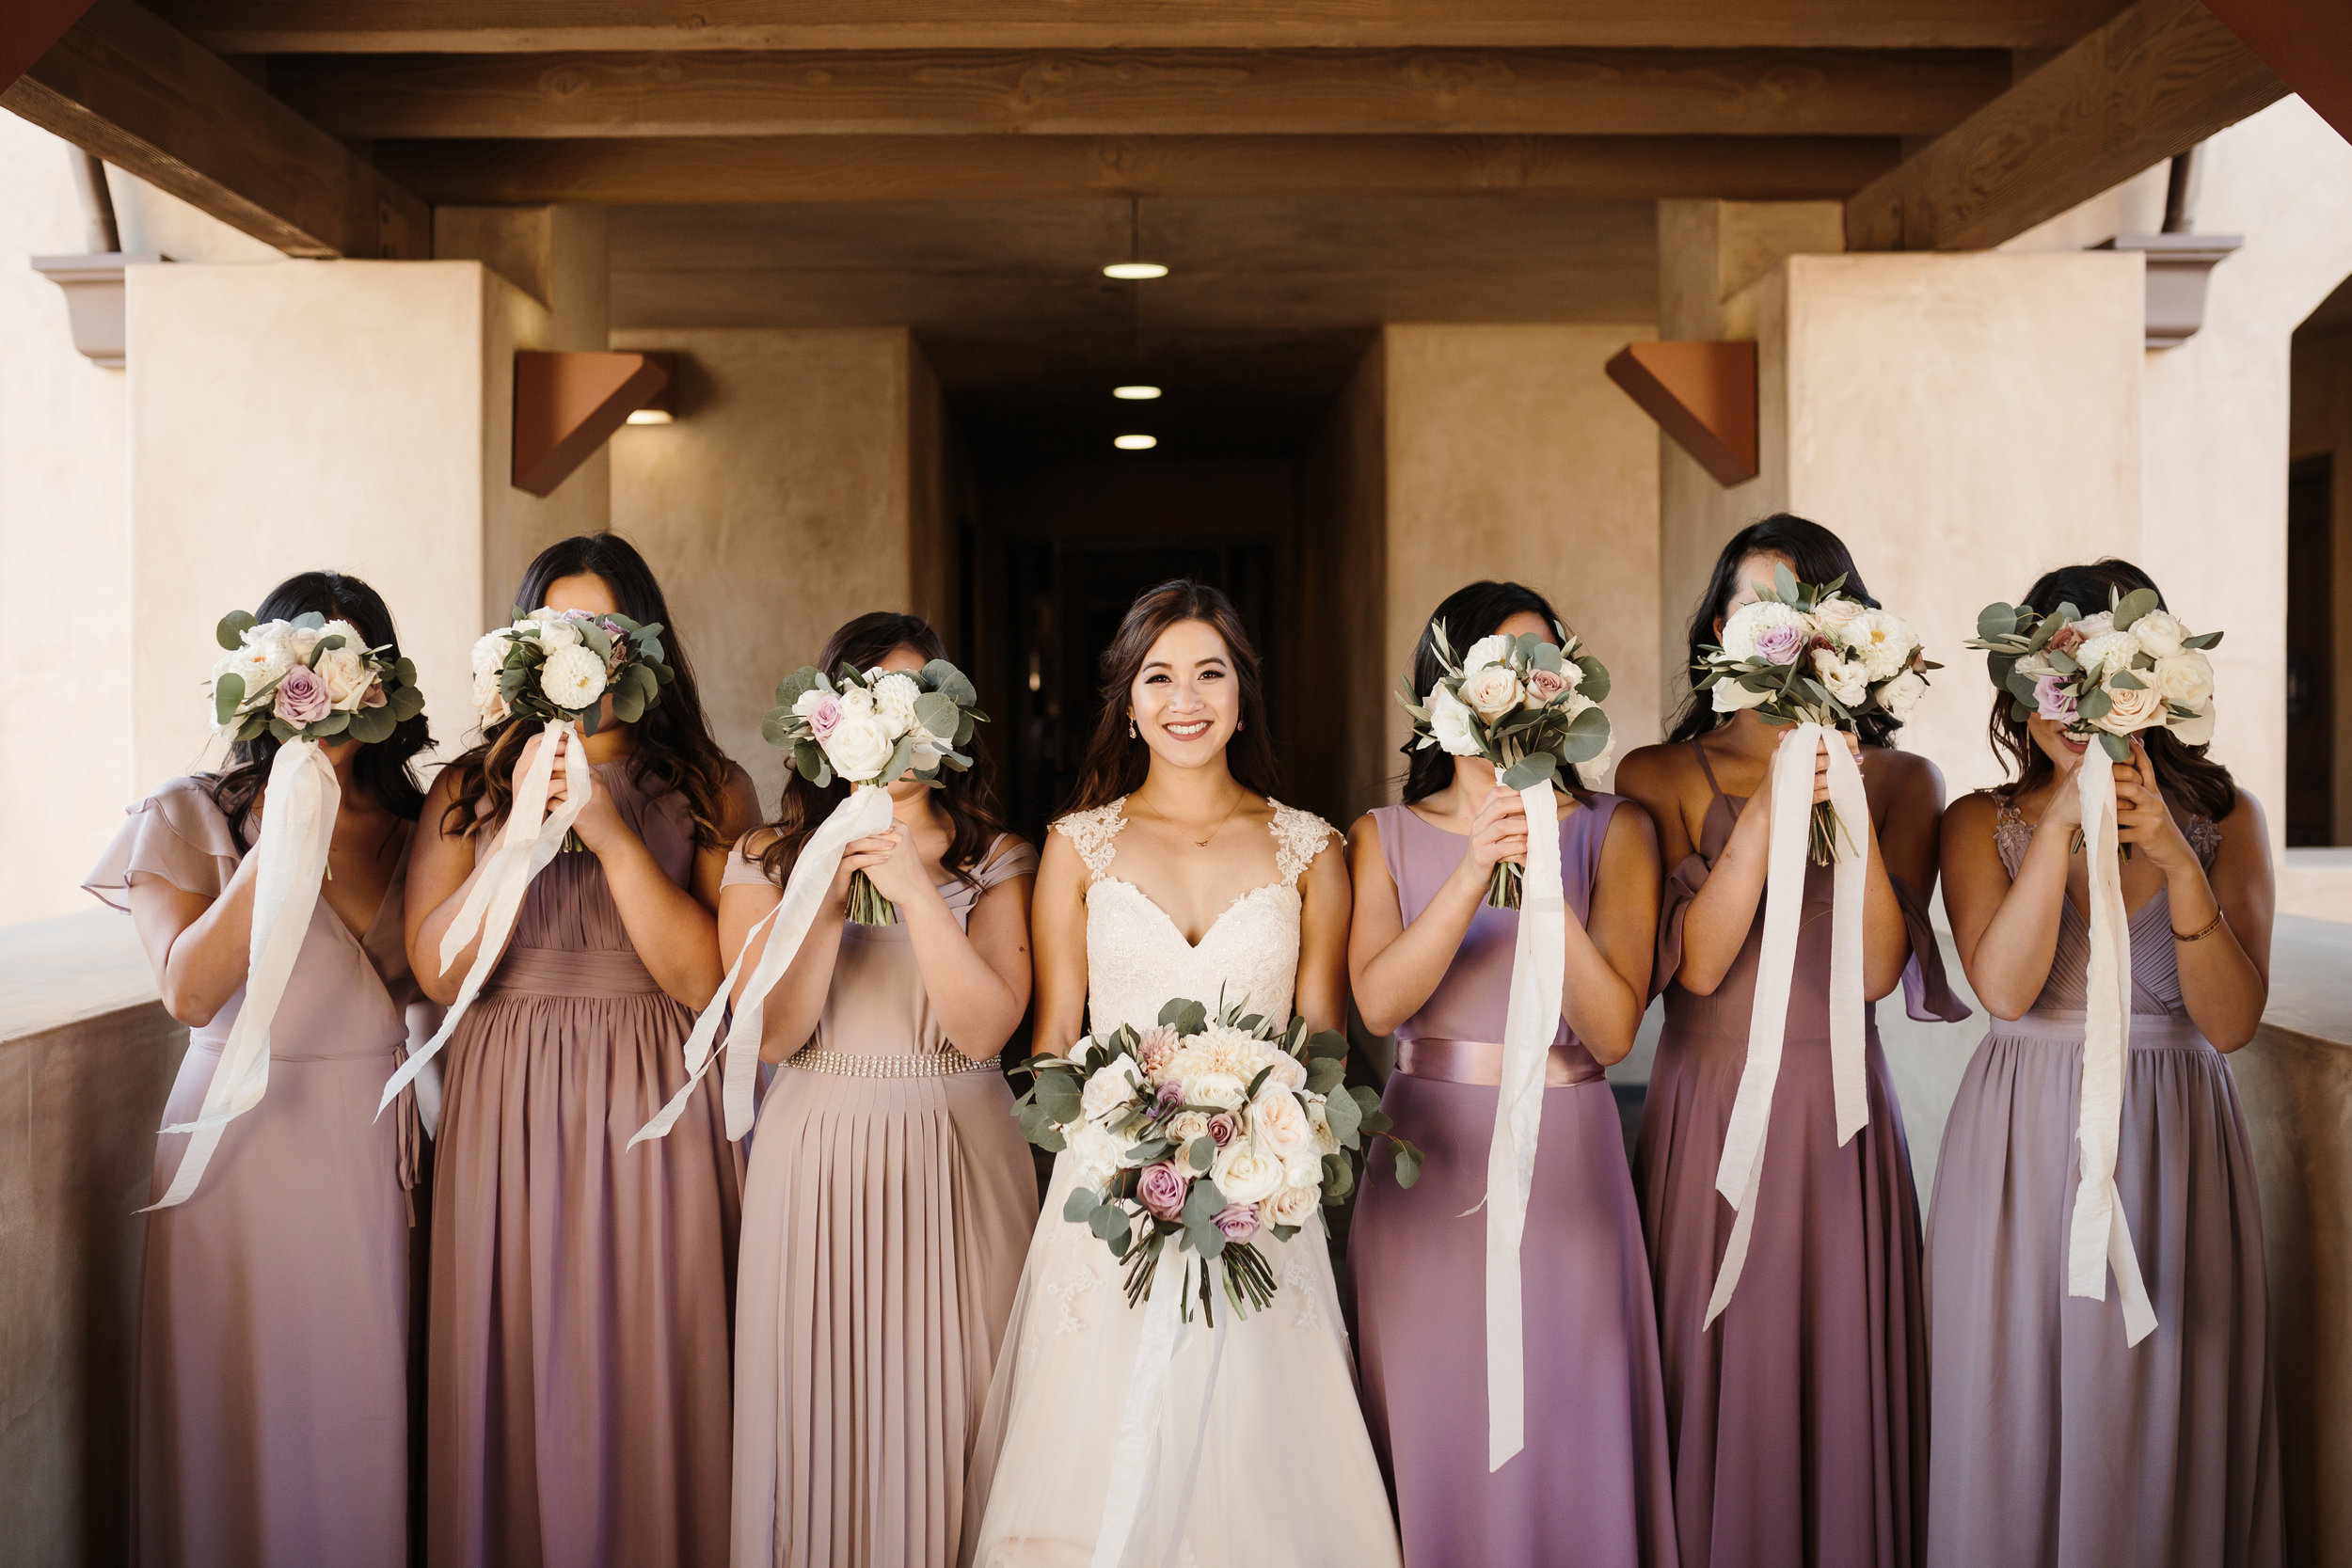 tangwedding-bridesmaids_51.JPG